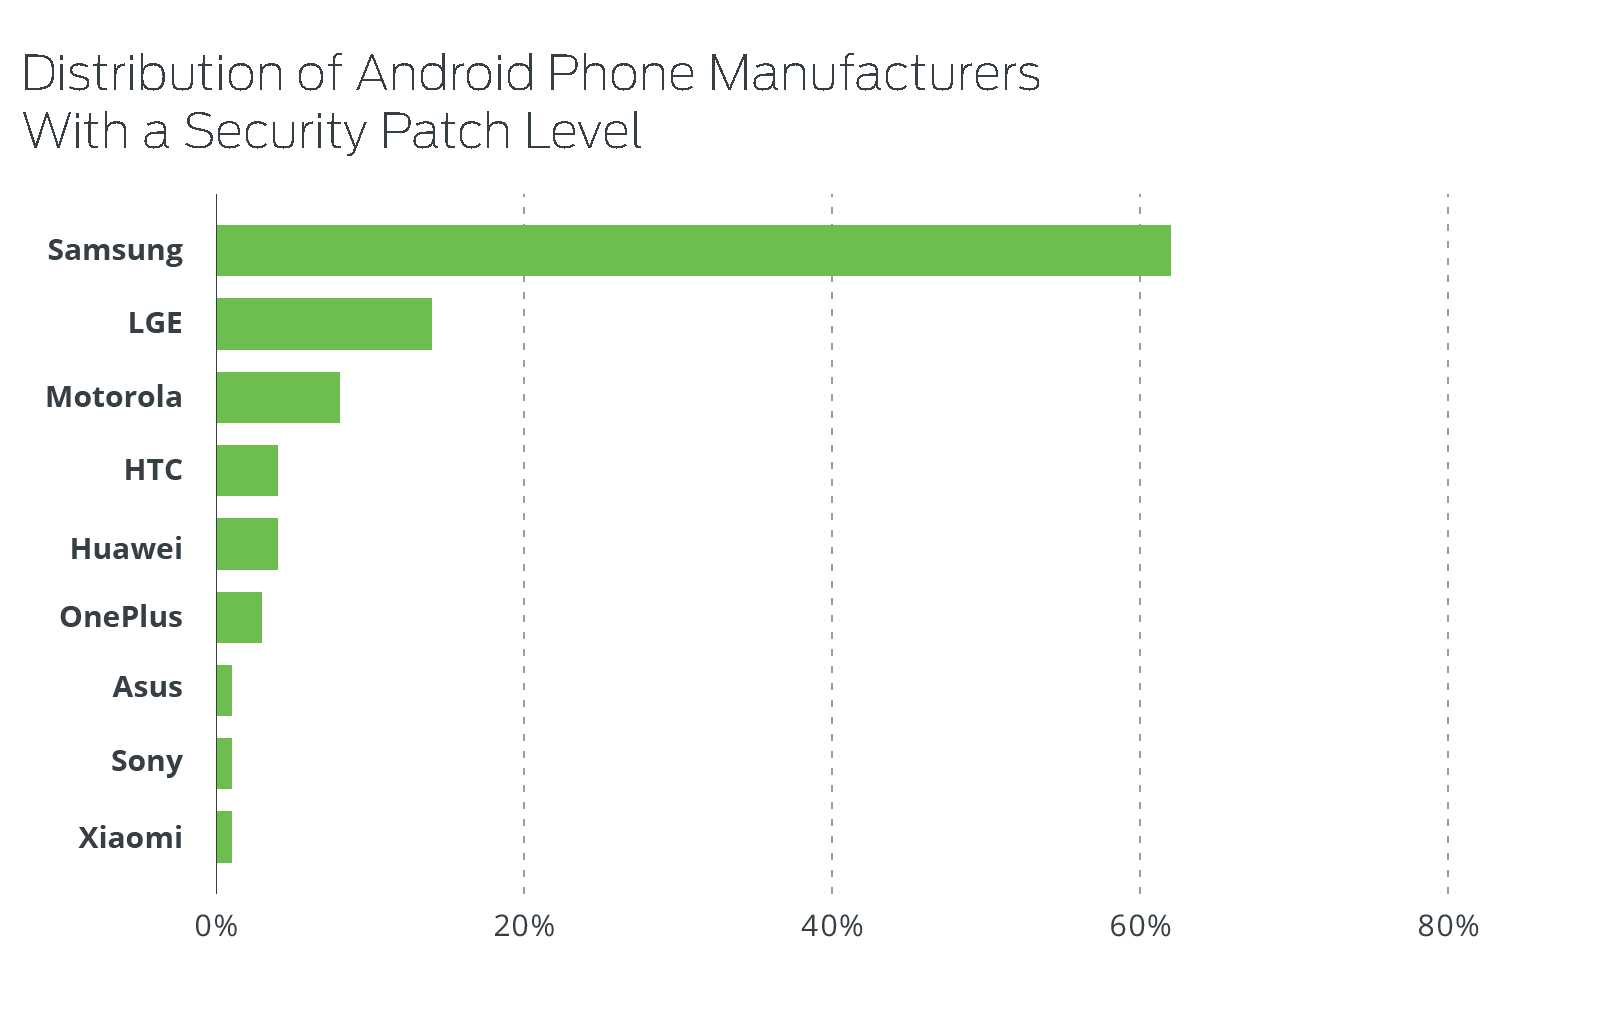 Distribution of Android Phone Manufacturers With a Security Patch Level